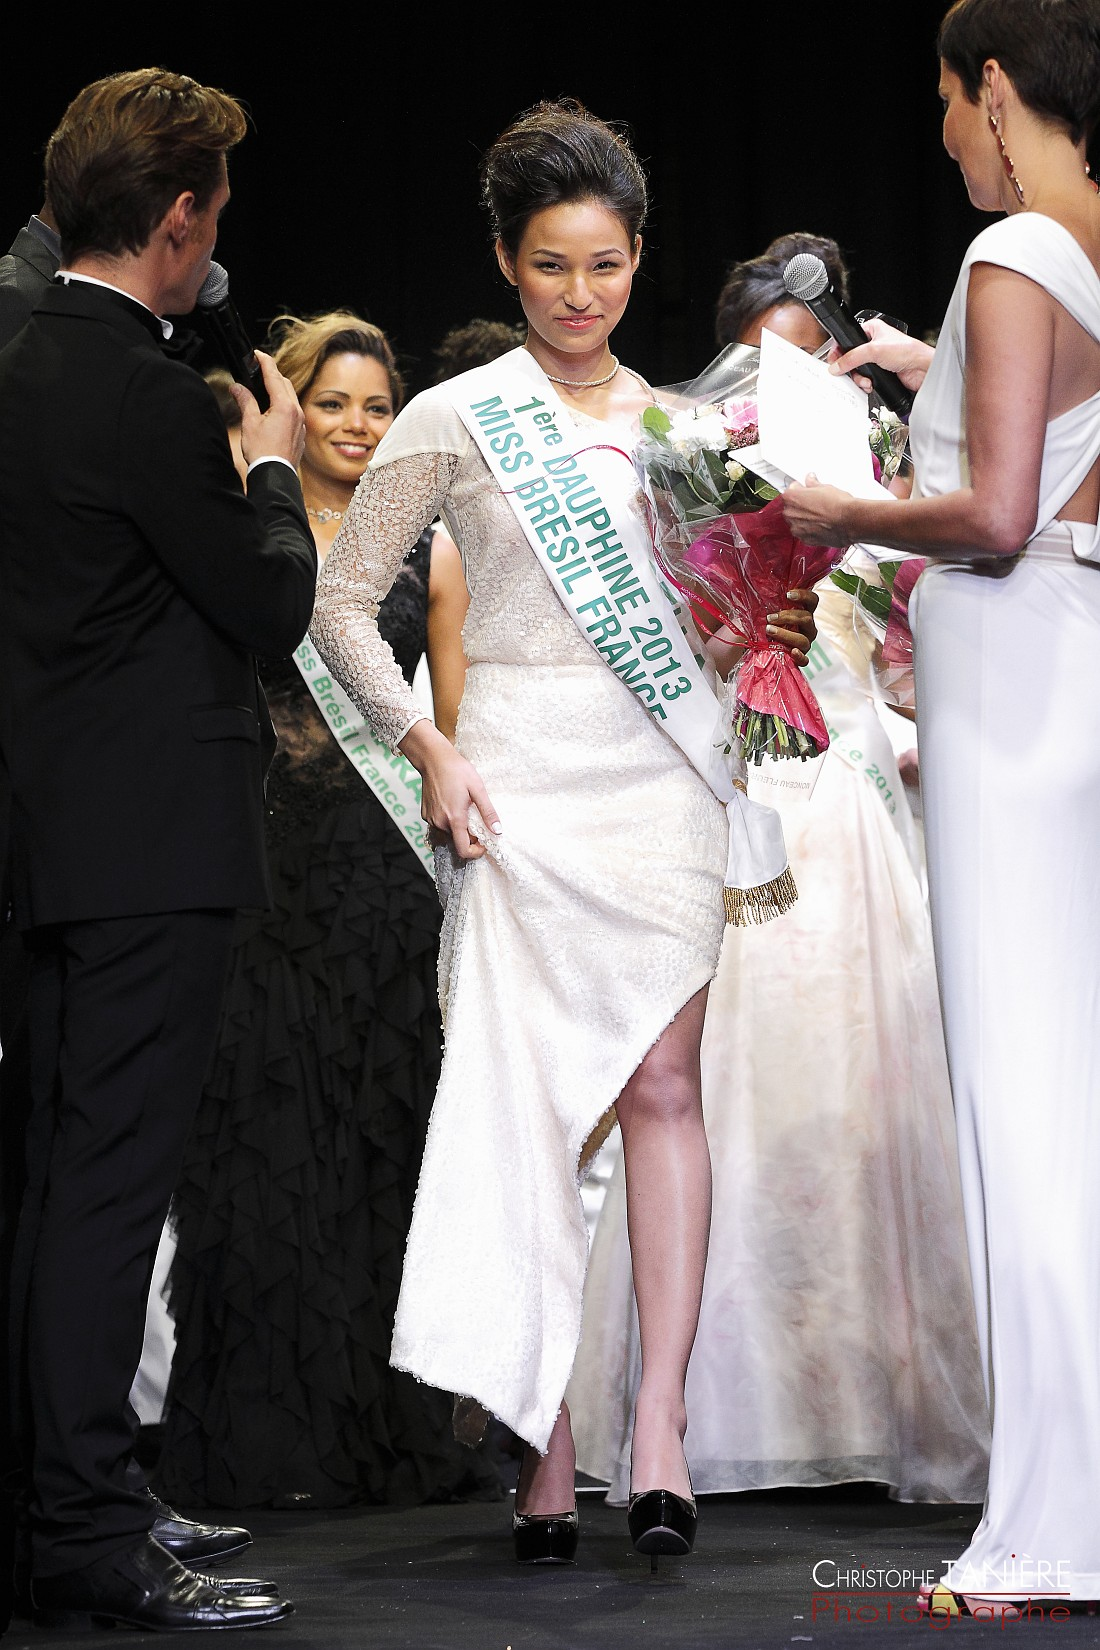 première dauphine-Marcella Yumi-Miss Bresil France